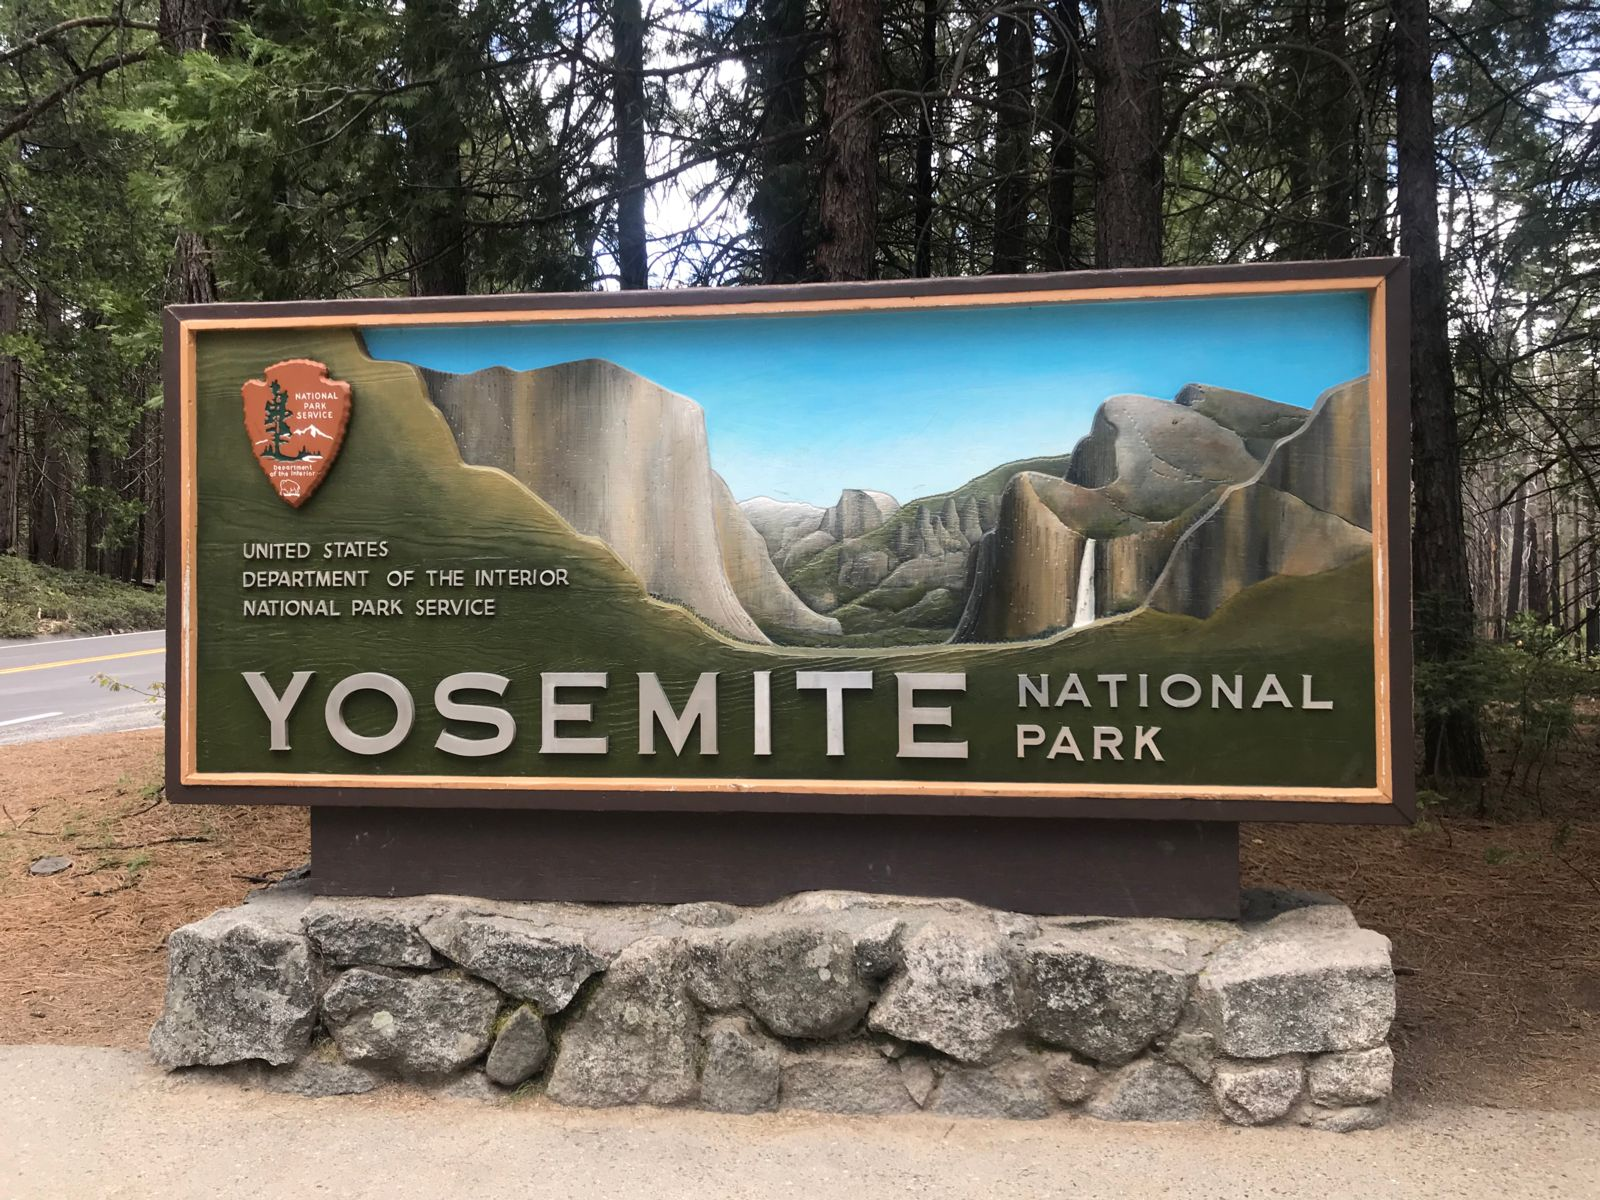 Yosemite National Park welcome sign